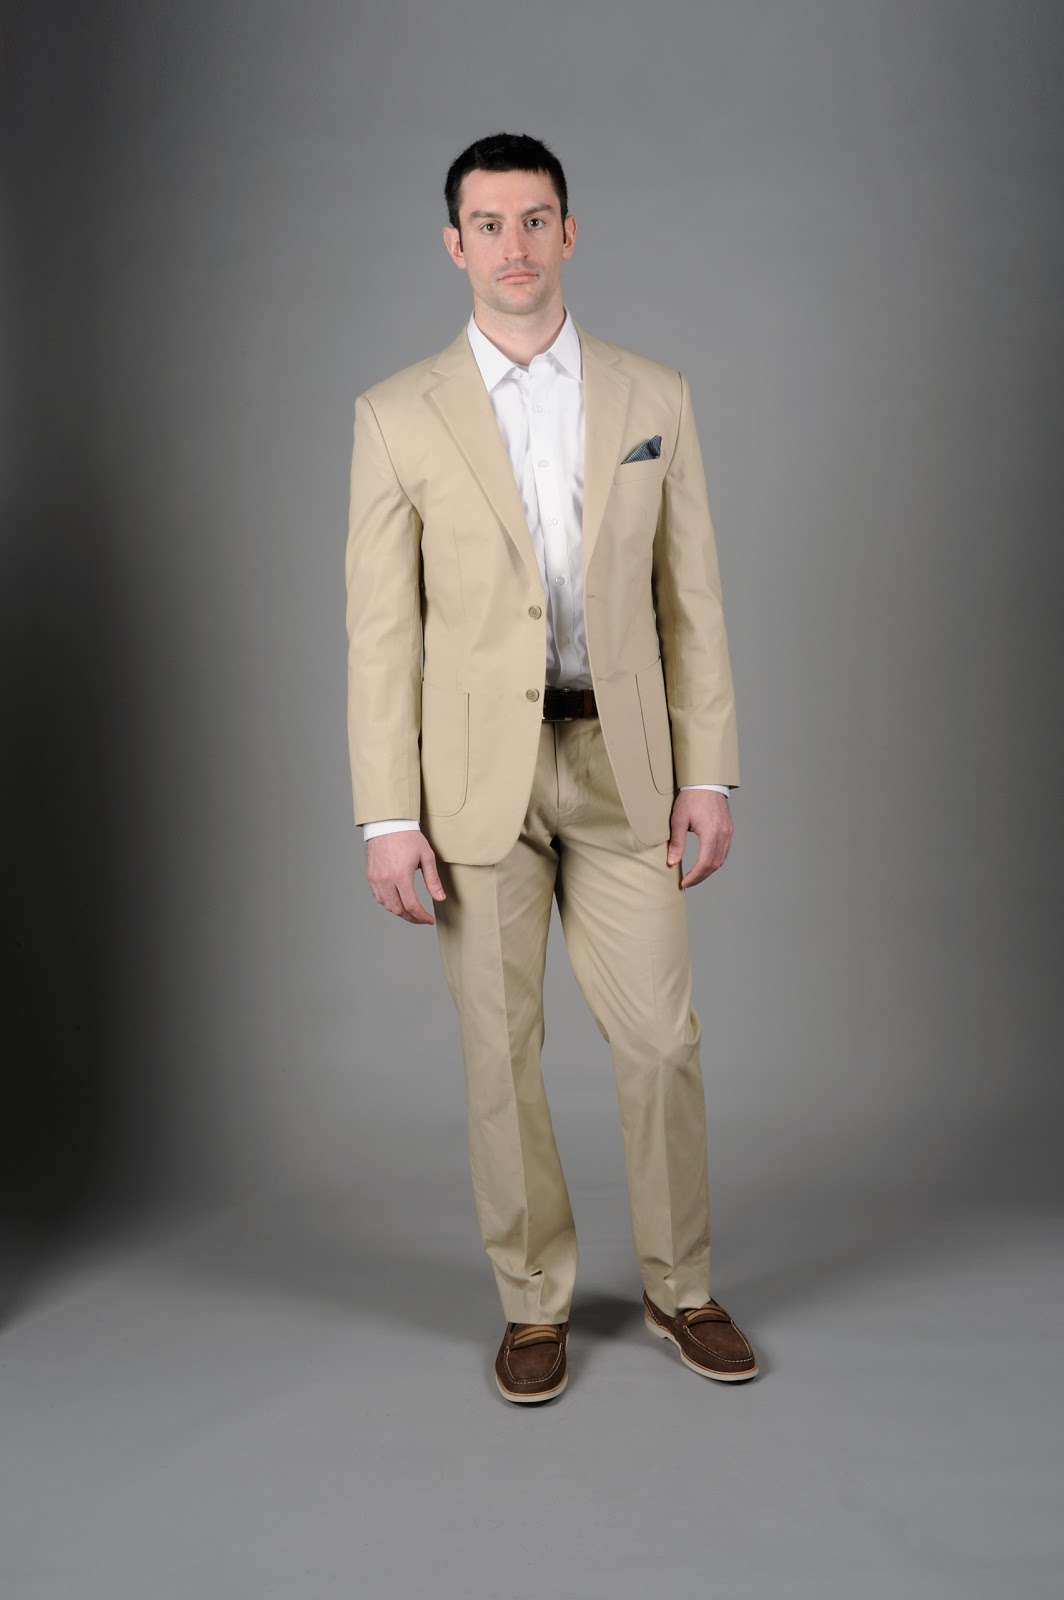 Tan/Beige Men's Suits at Macy's come in all styles and sizes. Shop Tan/Beige Men's Suits and get free shipping w/minimum purchase!